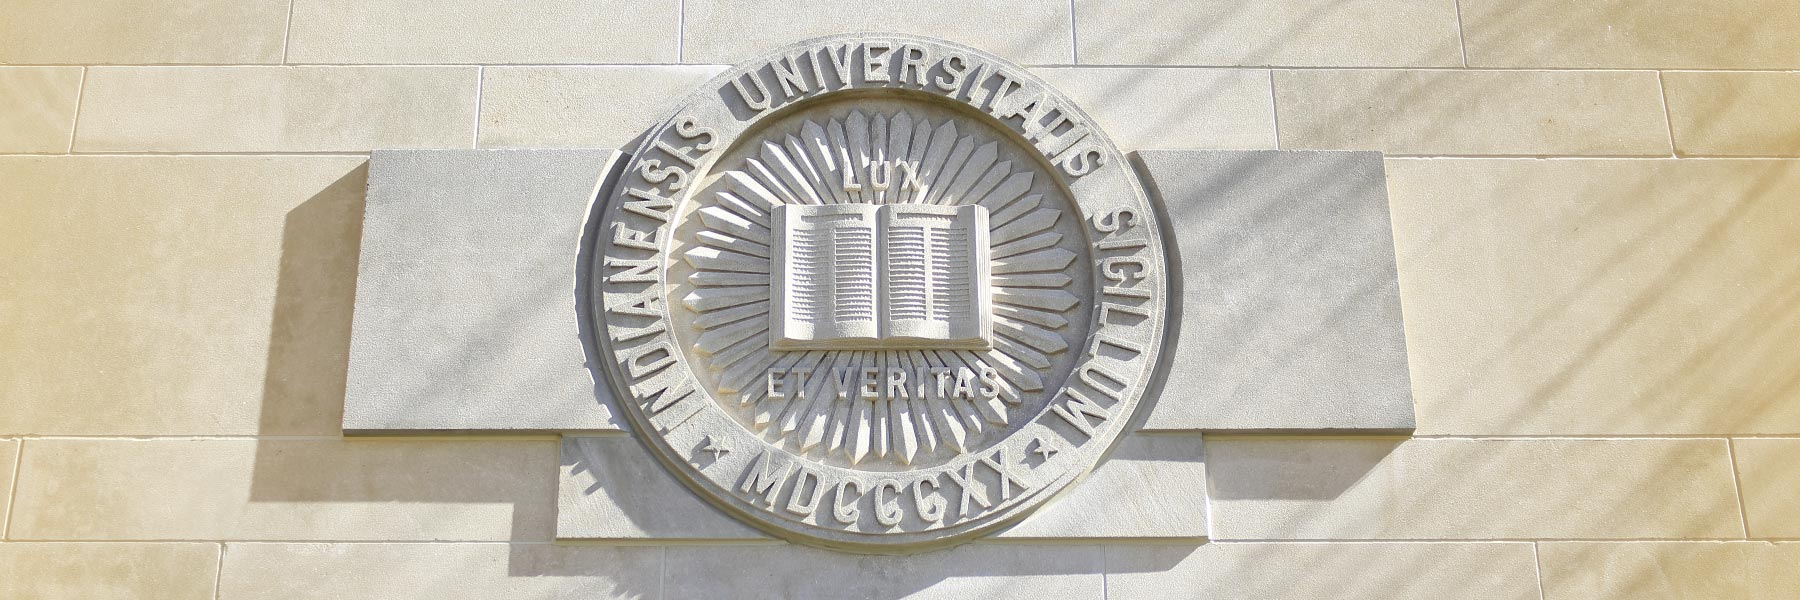 carved IU seal on a limestone building